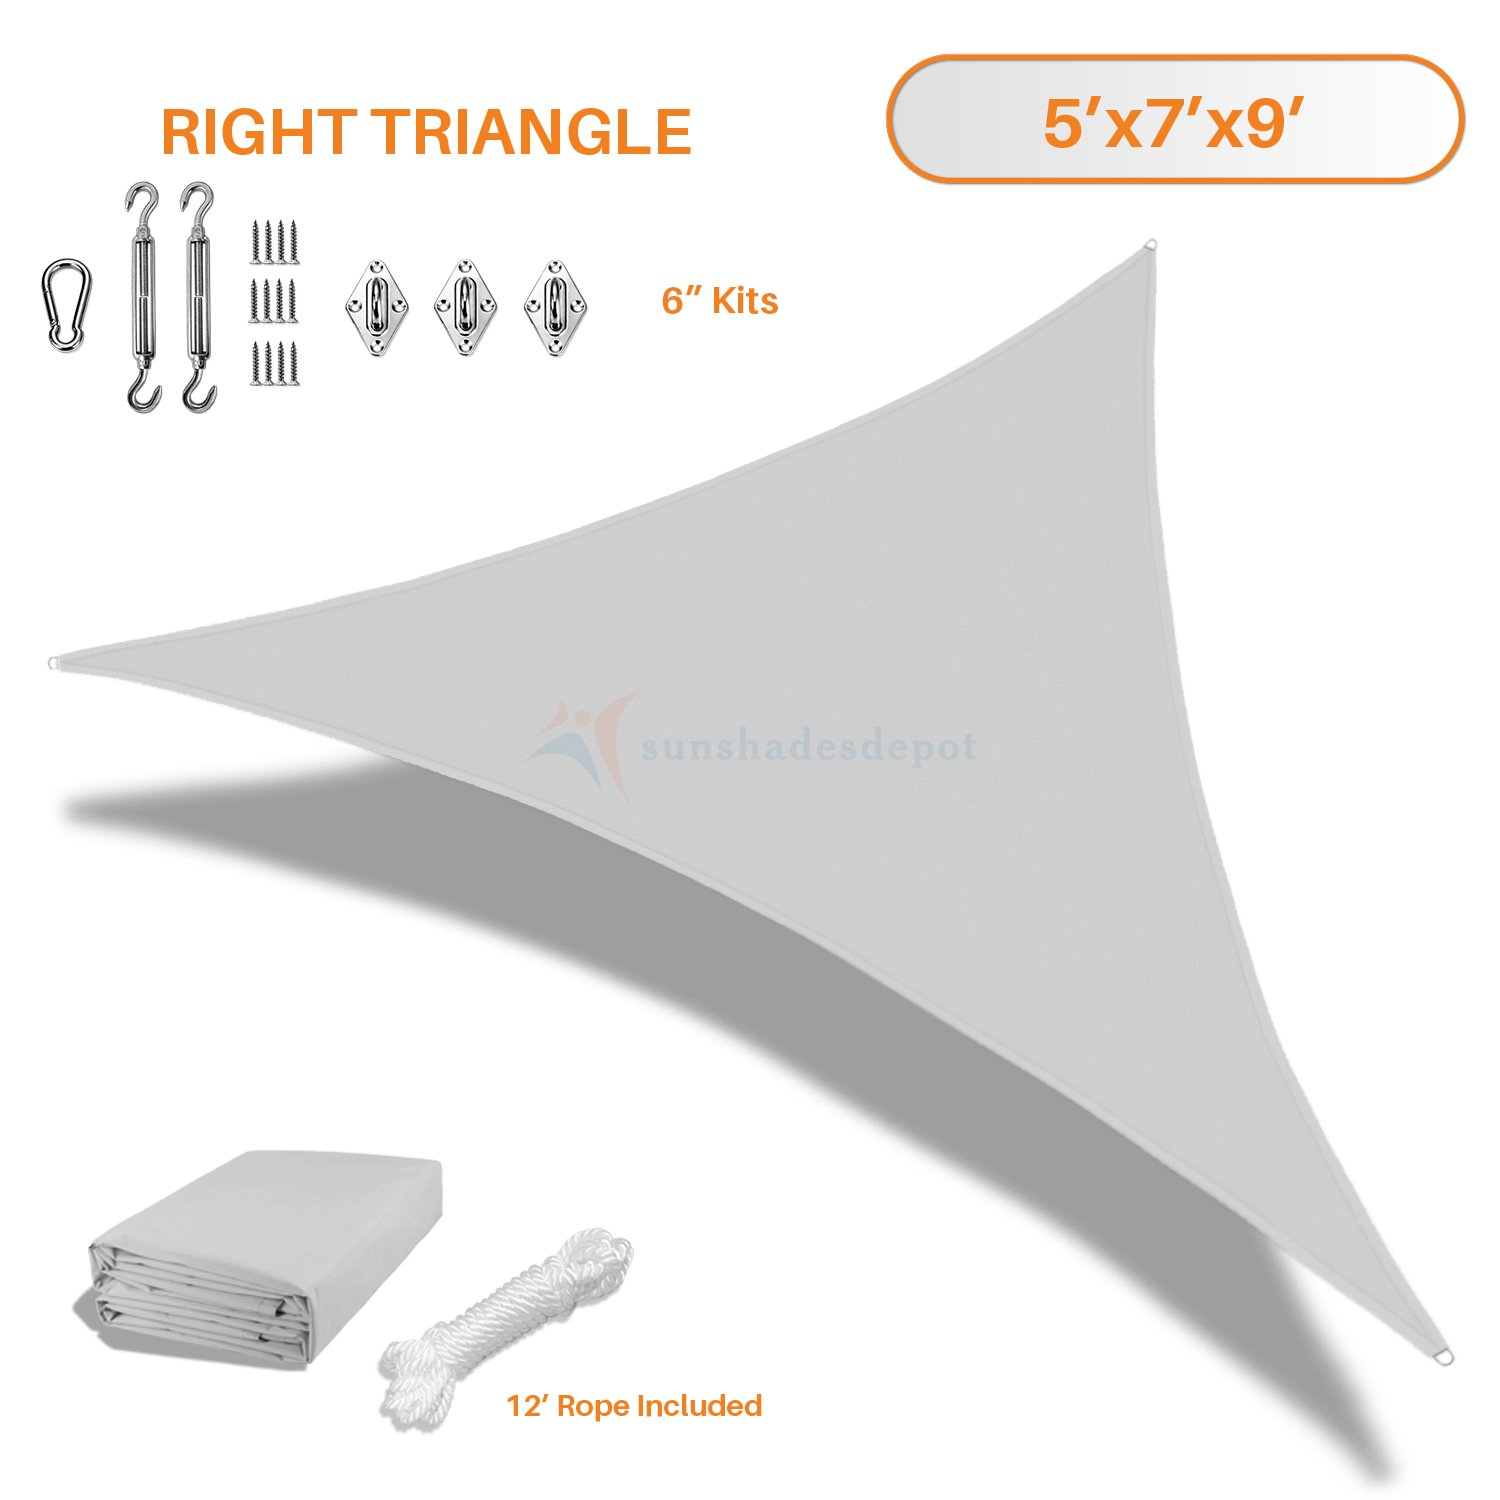 Sunshades Depot 5x7x9 Right Triangle Waterproof Knitted Shade Sail With 6 inch Kit Curved Edge Light Gray/Light Grey 220 GSM UV Block Shade Fabric Pergola Carport Awning Canopy Replacement Awning